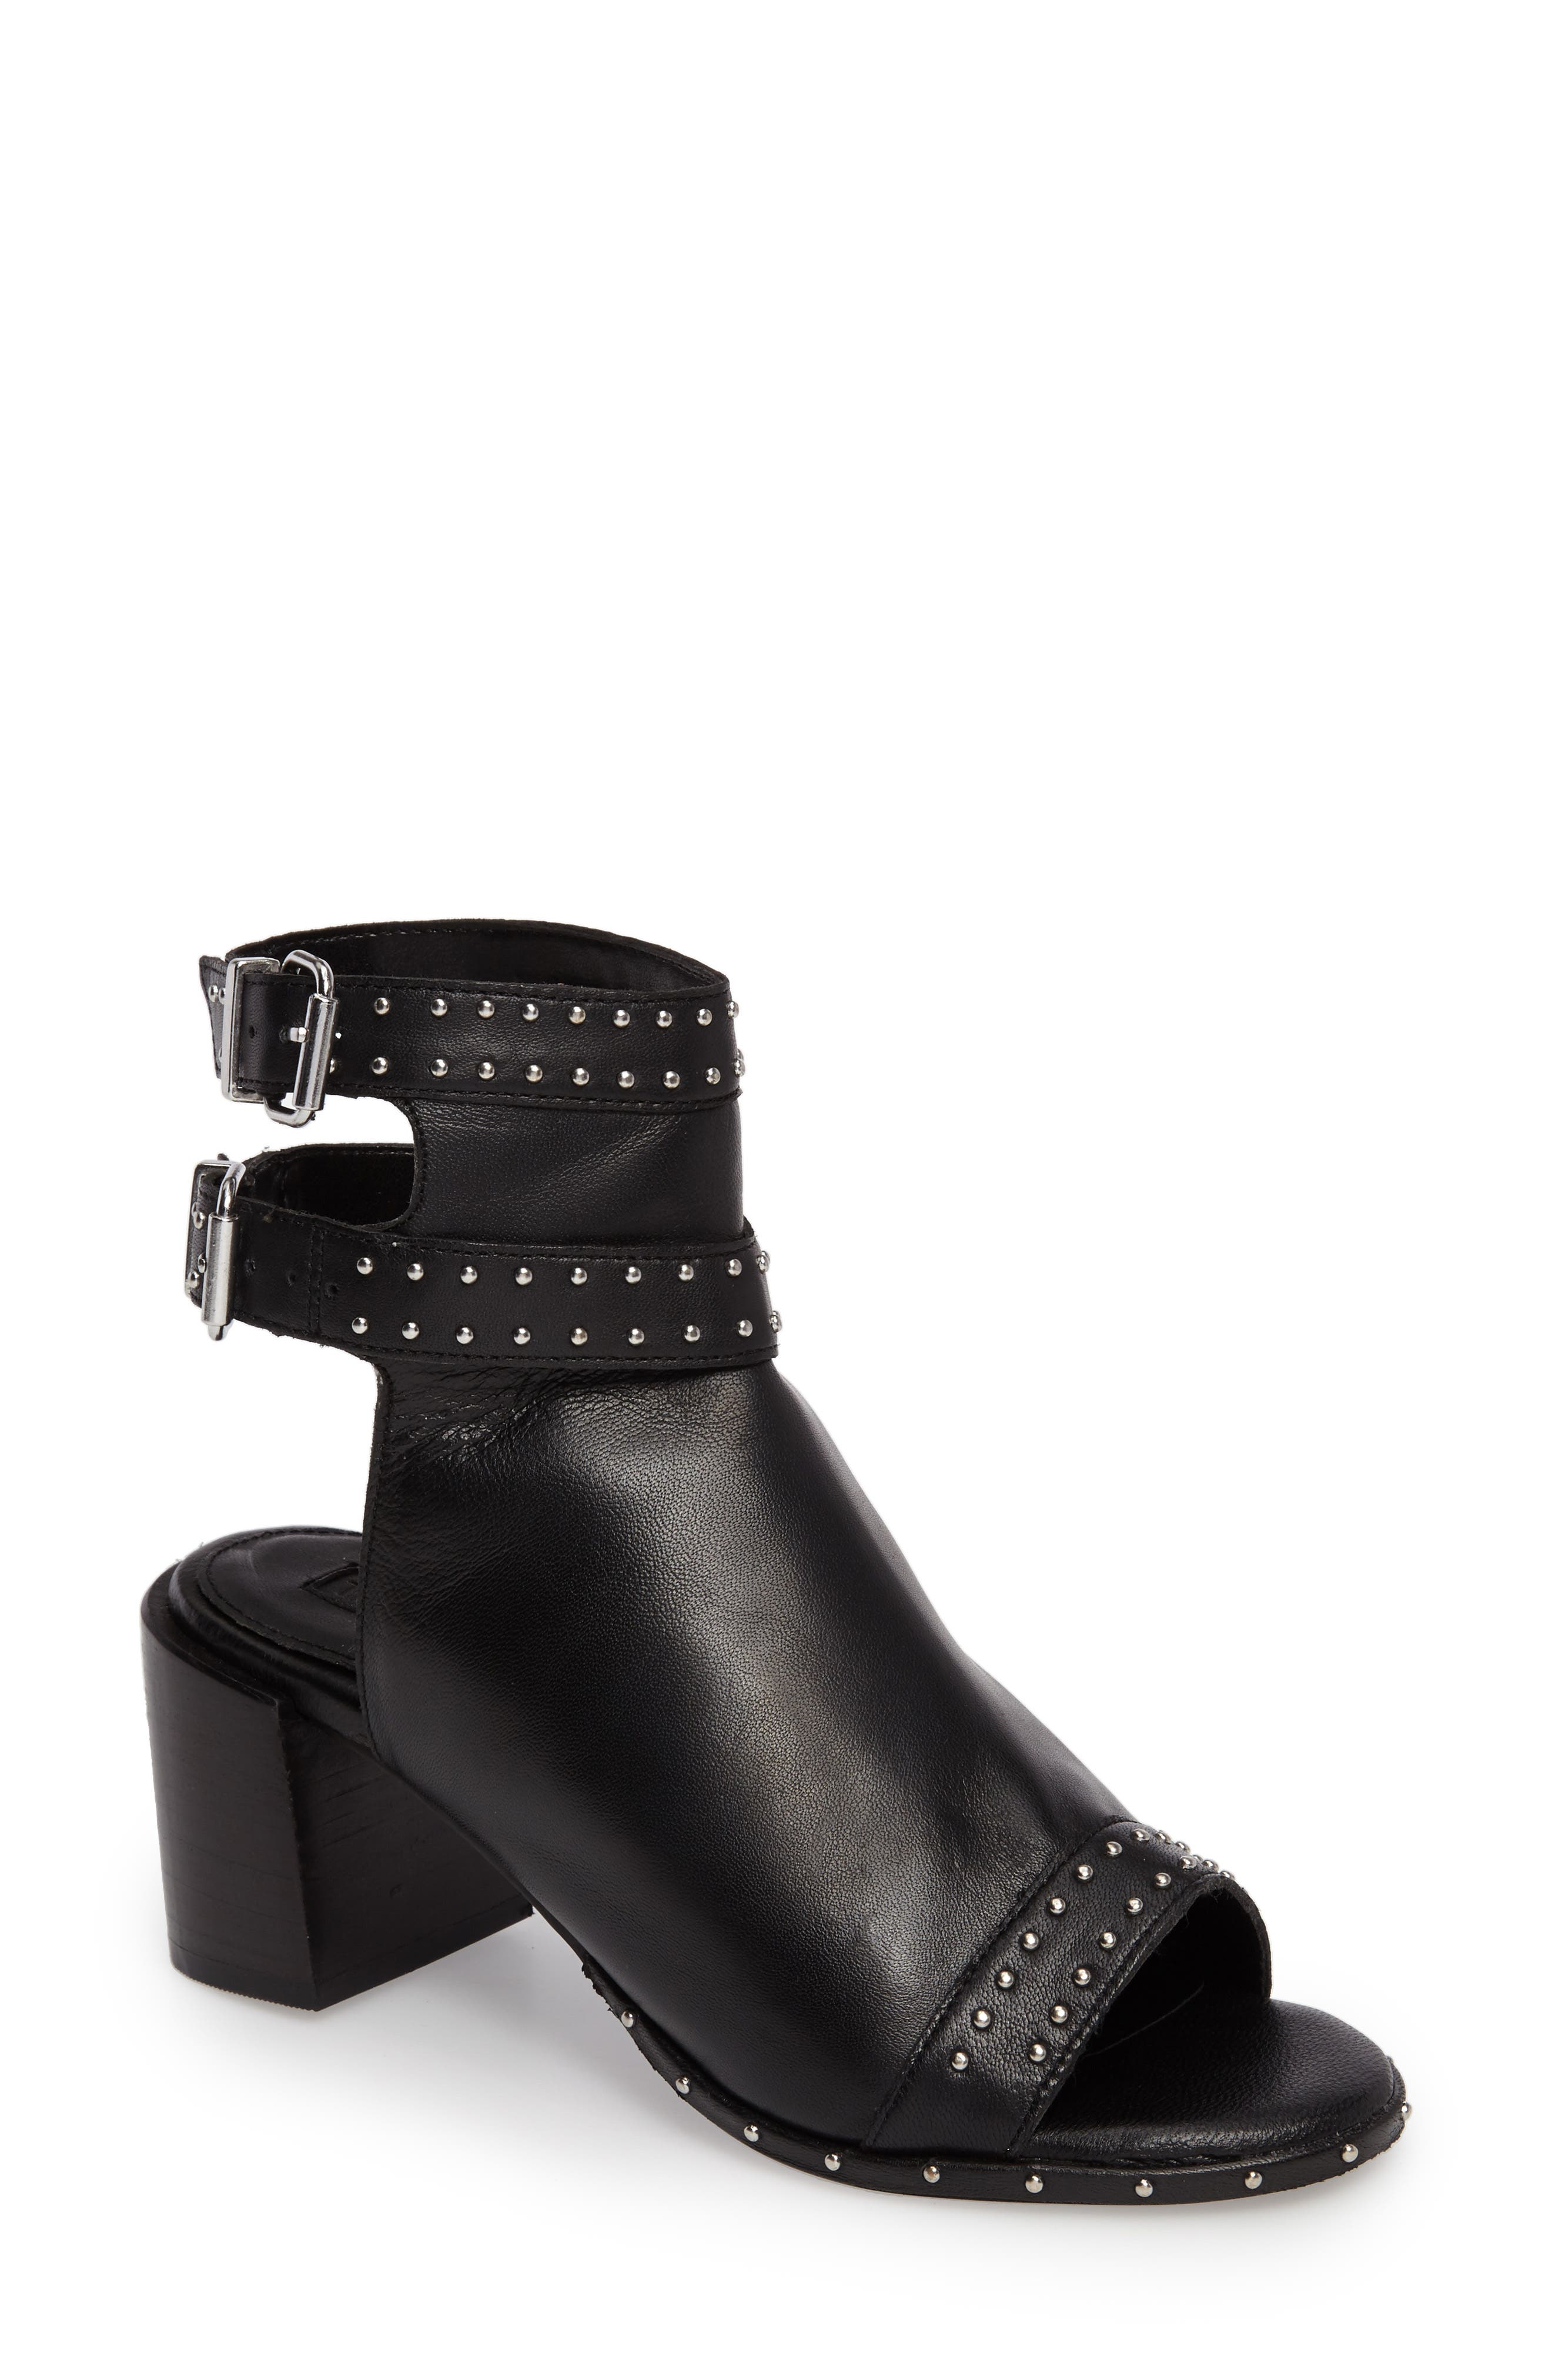 North Studded Bootie Sandal,                         Main,                         color, 001